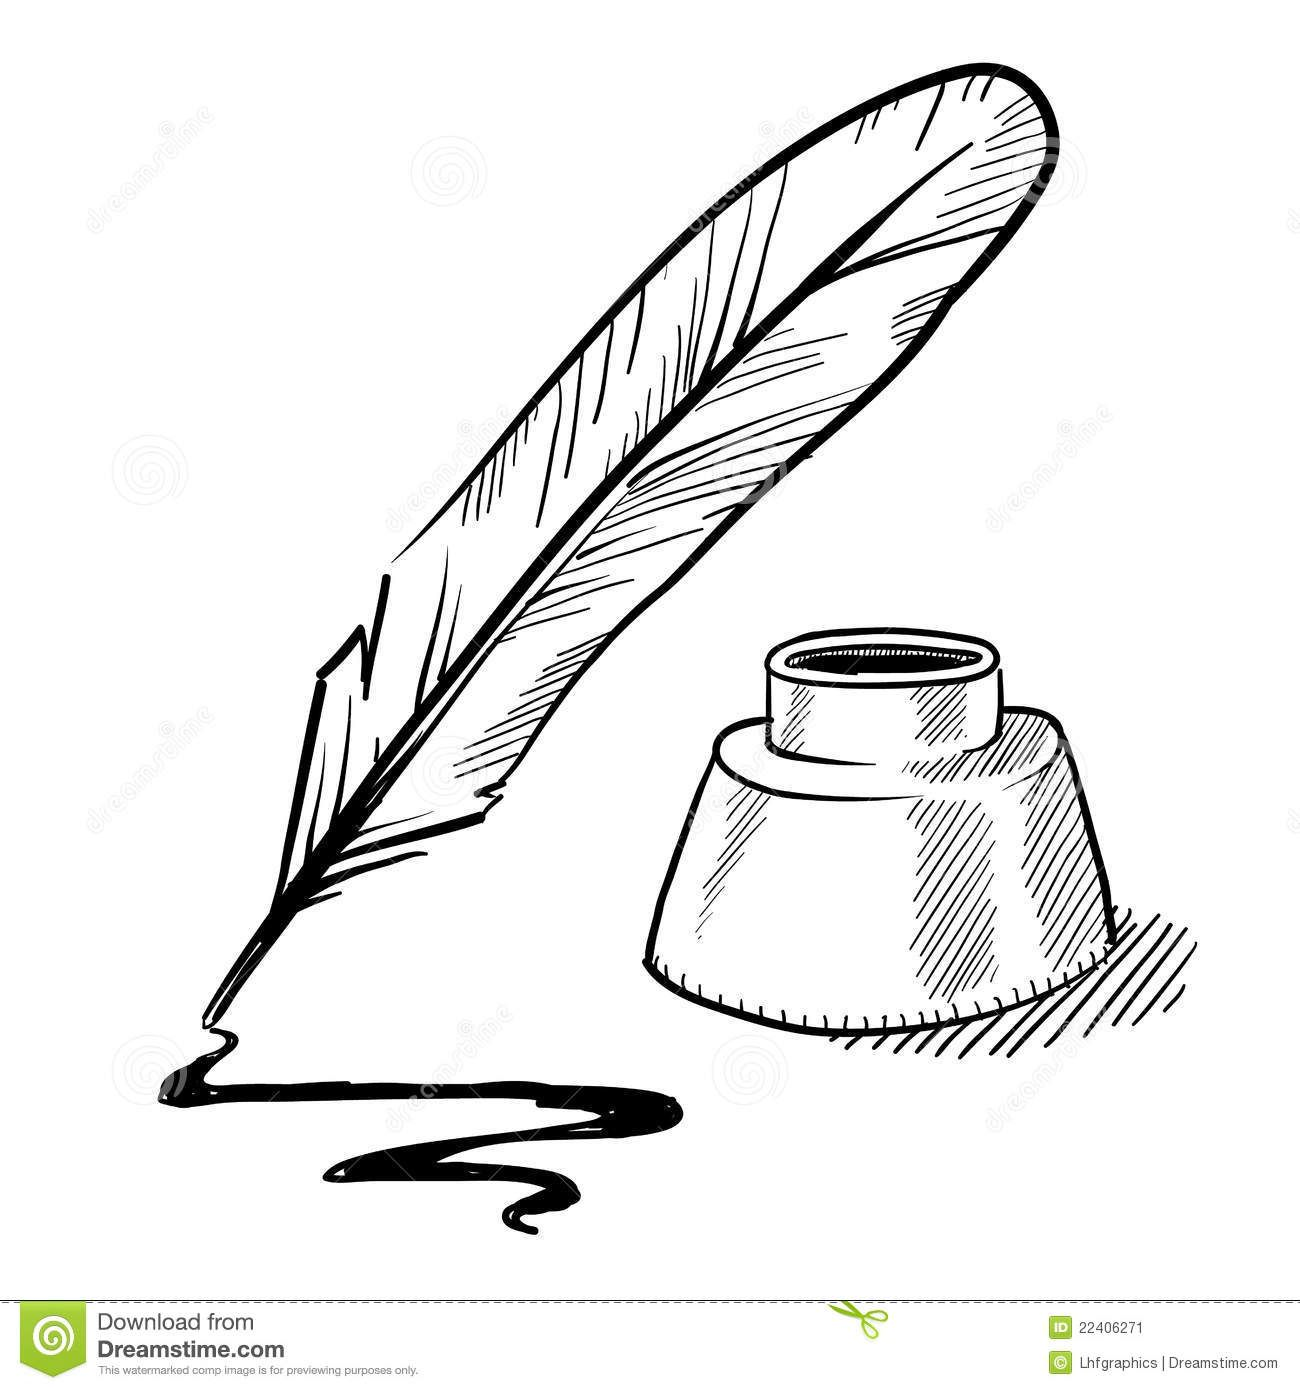 Images For > Feather Pen And Scroll Clip Art.